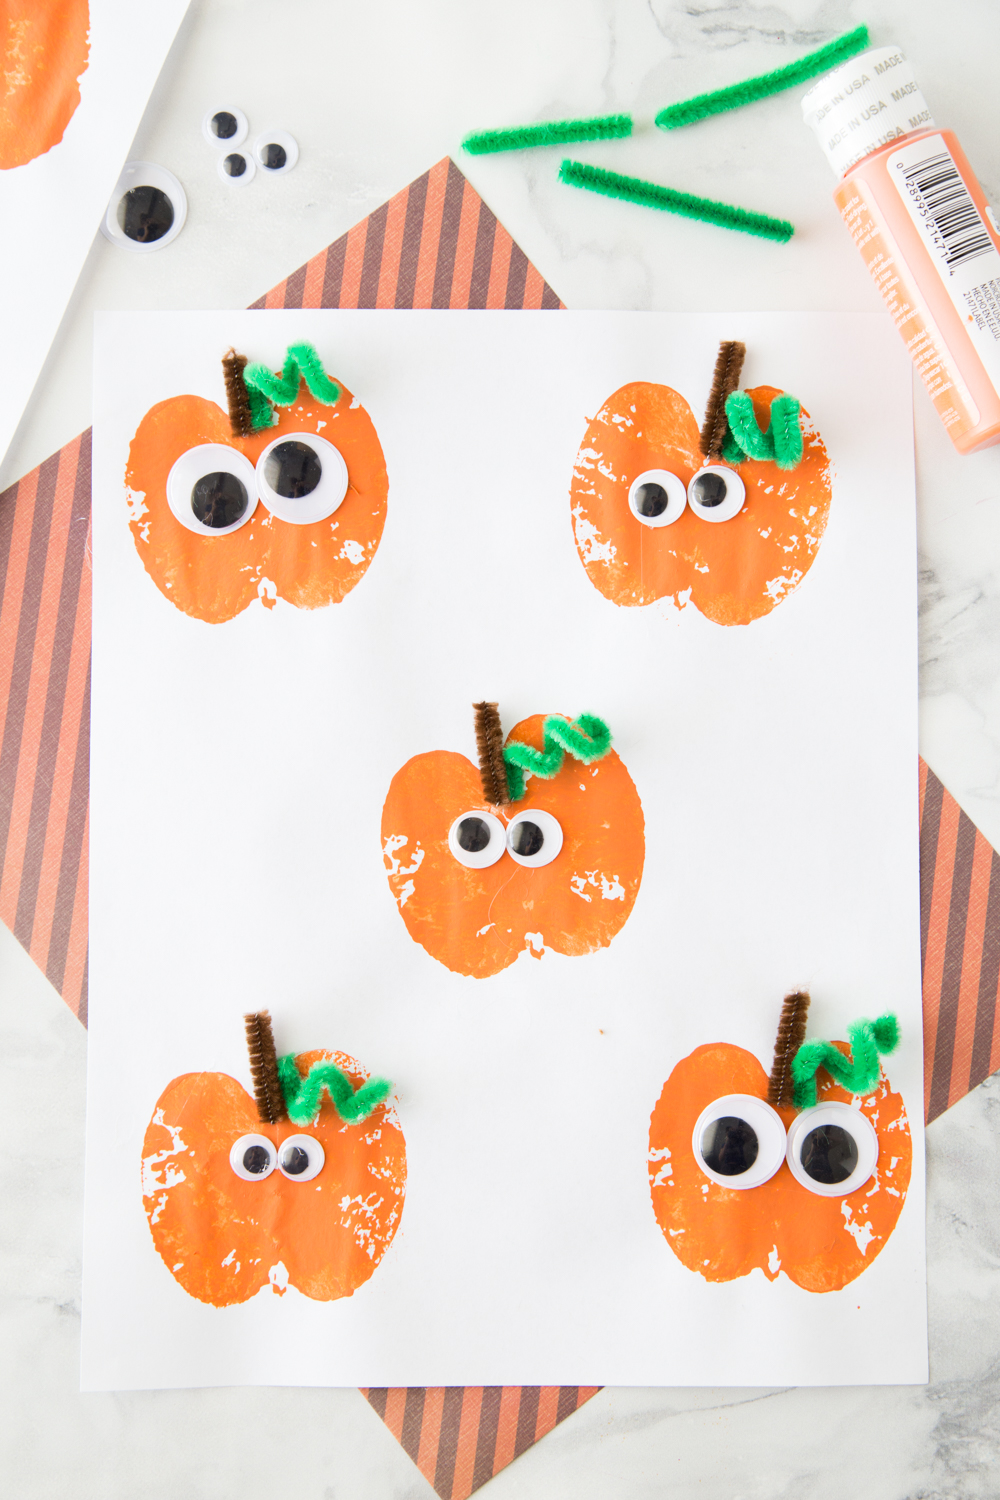 Easy Thanksgiving crafts for kids: Apple Stamping Pumpkin Craft